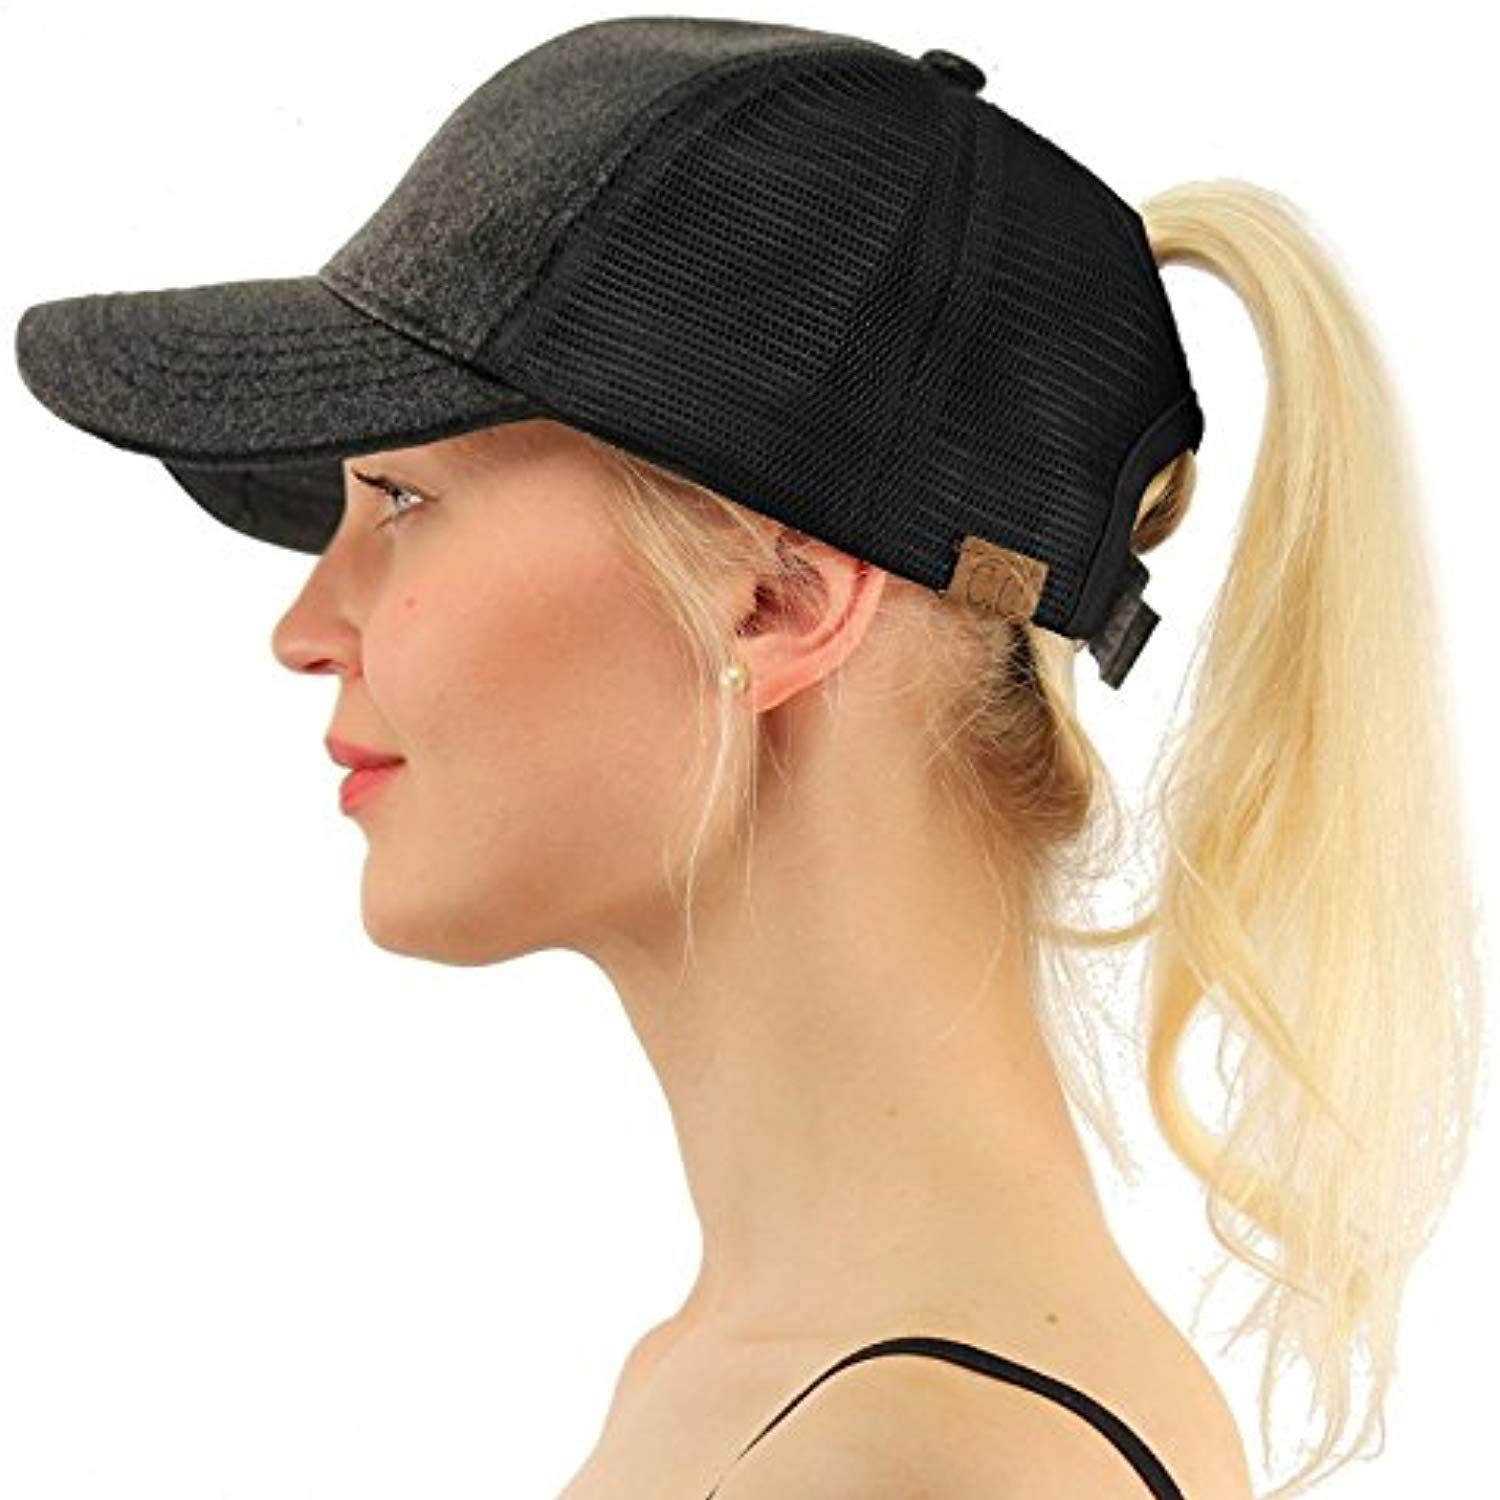 Ponytail Messy Buns Trucker Ponycaps Plain Baseball Visor Cap Dad Hat    Click image for more details. (This is an affiliate link) c3e6504e63d5